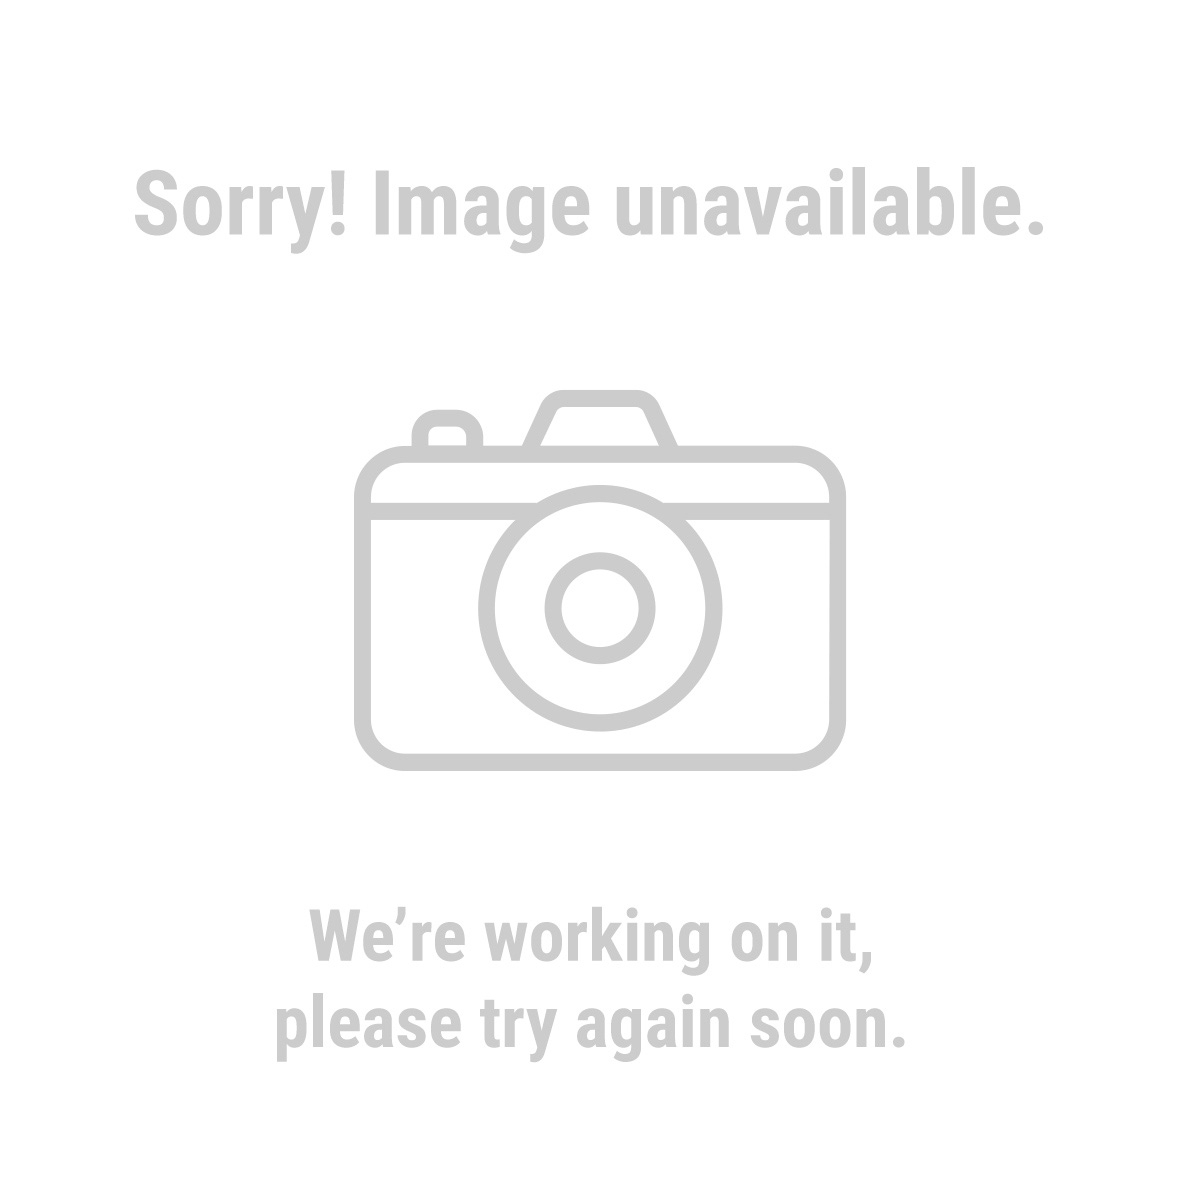 Pittsburgh® 93789 Pack of 10 Mini Utility Blades